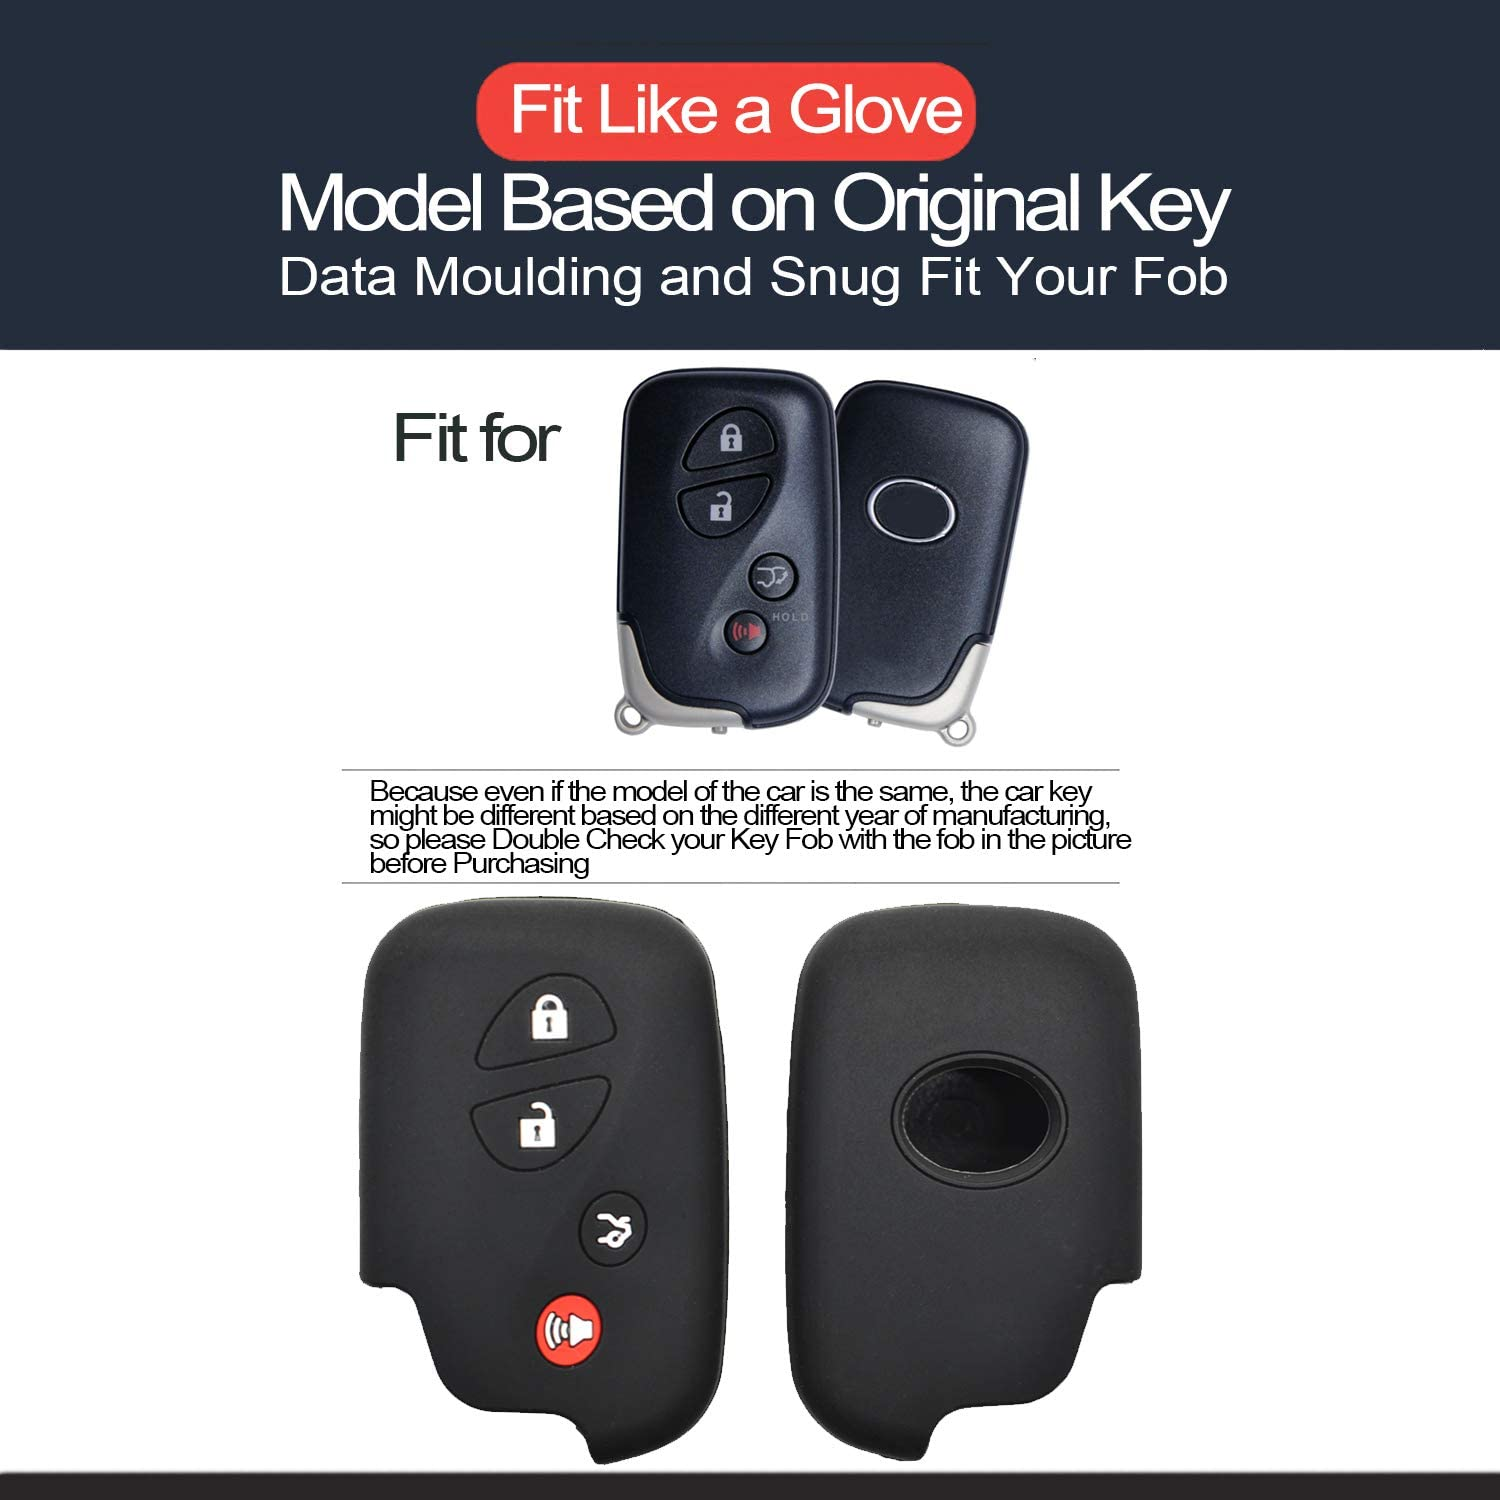 2pcs Compatible with Lexus Smart 4 Buttons Silicone FOB Key Case Cover Protector Keyless Remote Holder for 2005-2018 Lexus ES350 GS300 GS350 GS430 GS450h ISC IS250 IS350 LS460 LS600h